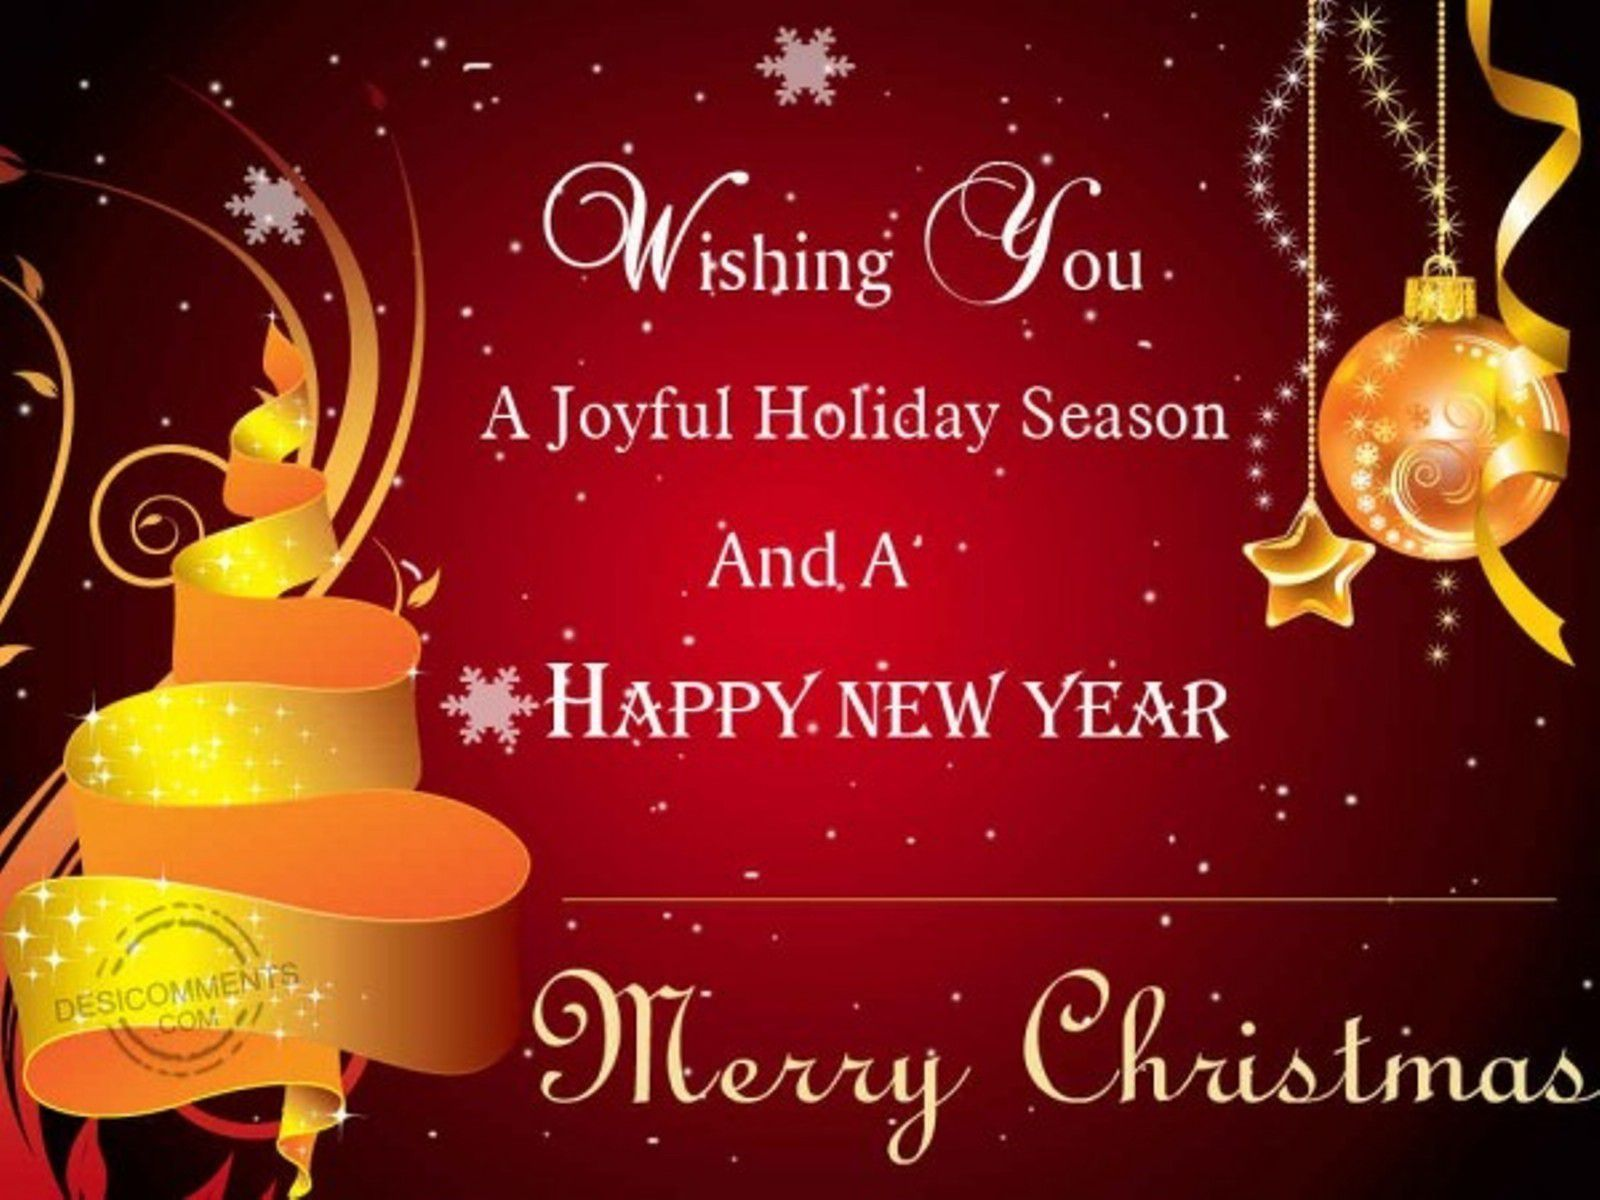 Wishing you happy merry xmas happy new year pinterest merry merry christmas wallpapers kristyandbryce Images